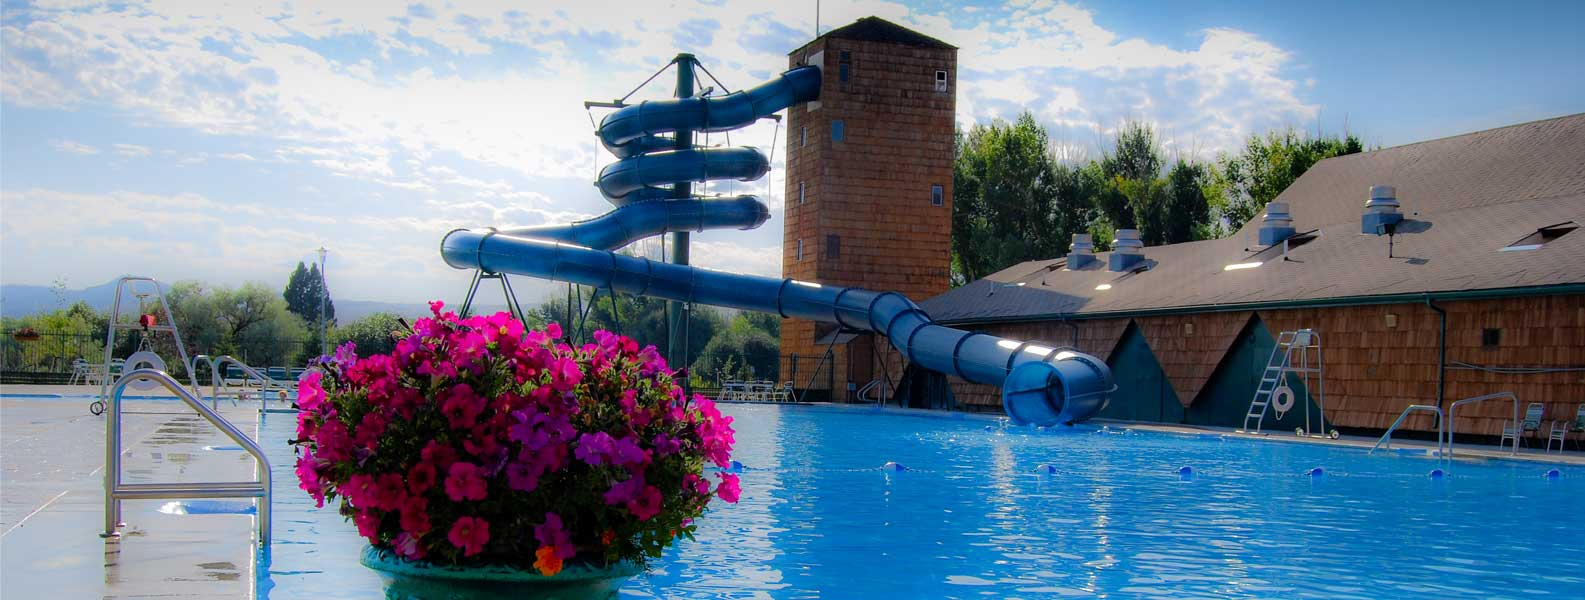 Fairmont Hot Springs Resort features the Whispering Willows Spa, Waterslides, Golf, Tennis, Banquet Facilities, Conference Facilities, Wedding Facilities